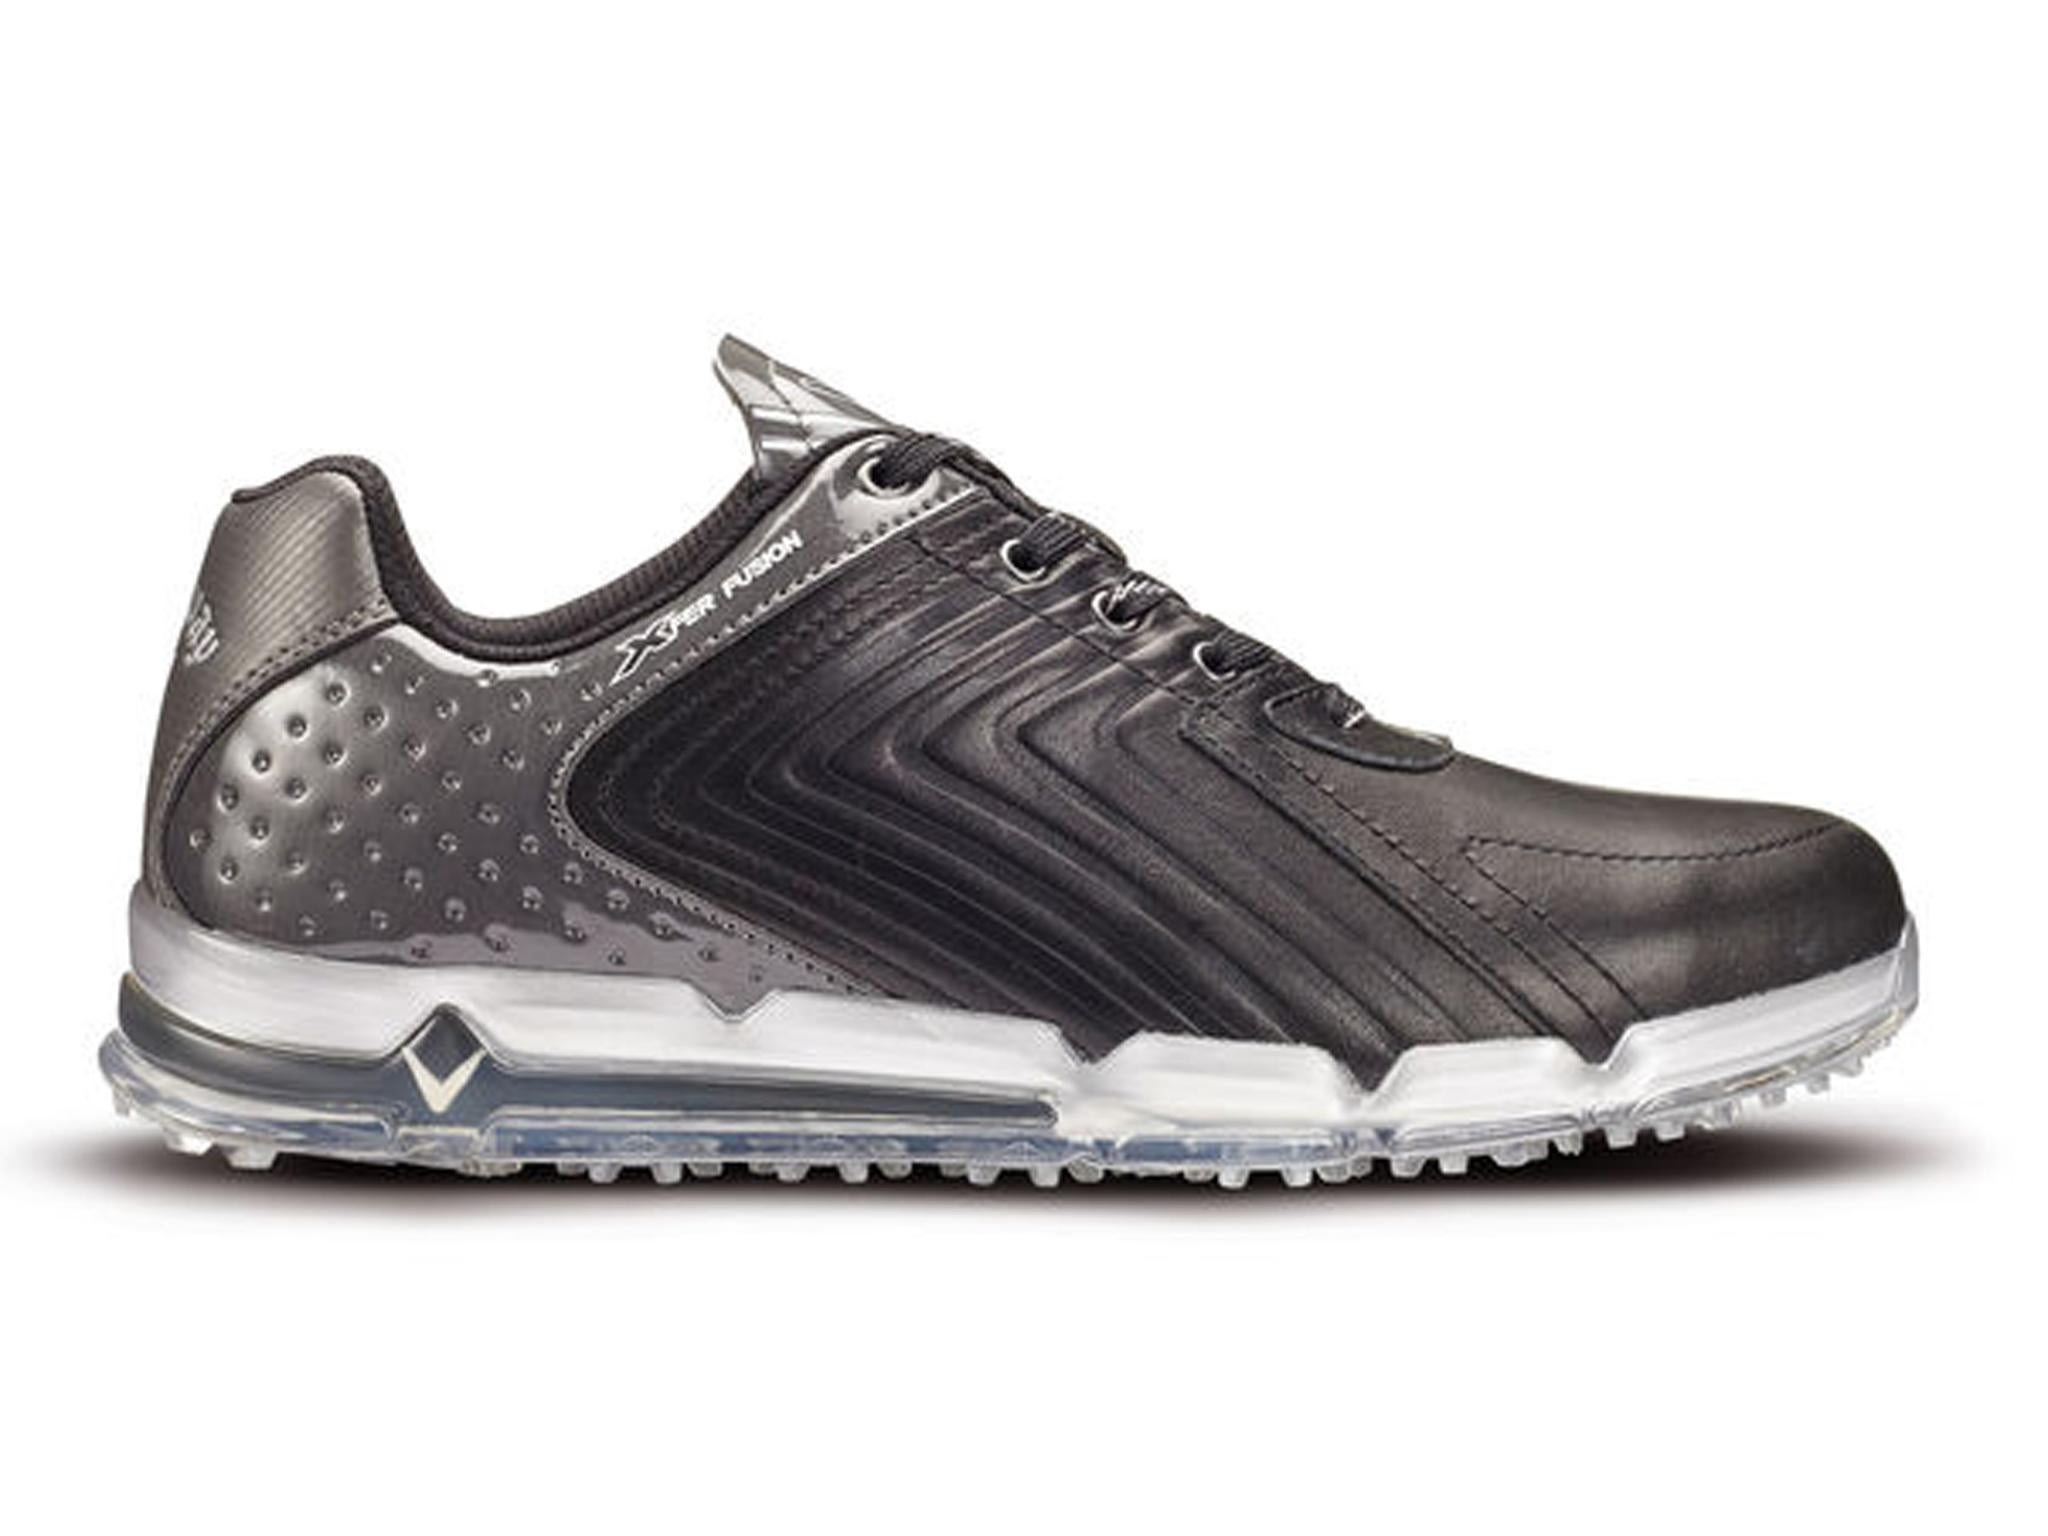 online retailer ea985 dea14 9 best spikeless golf shoes   The Independent